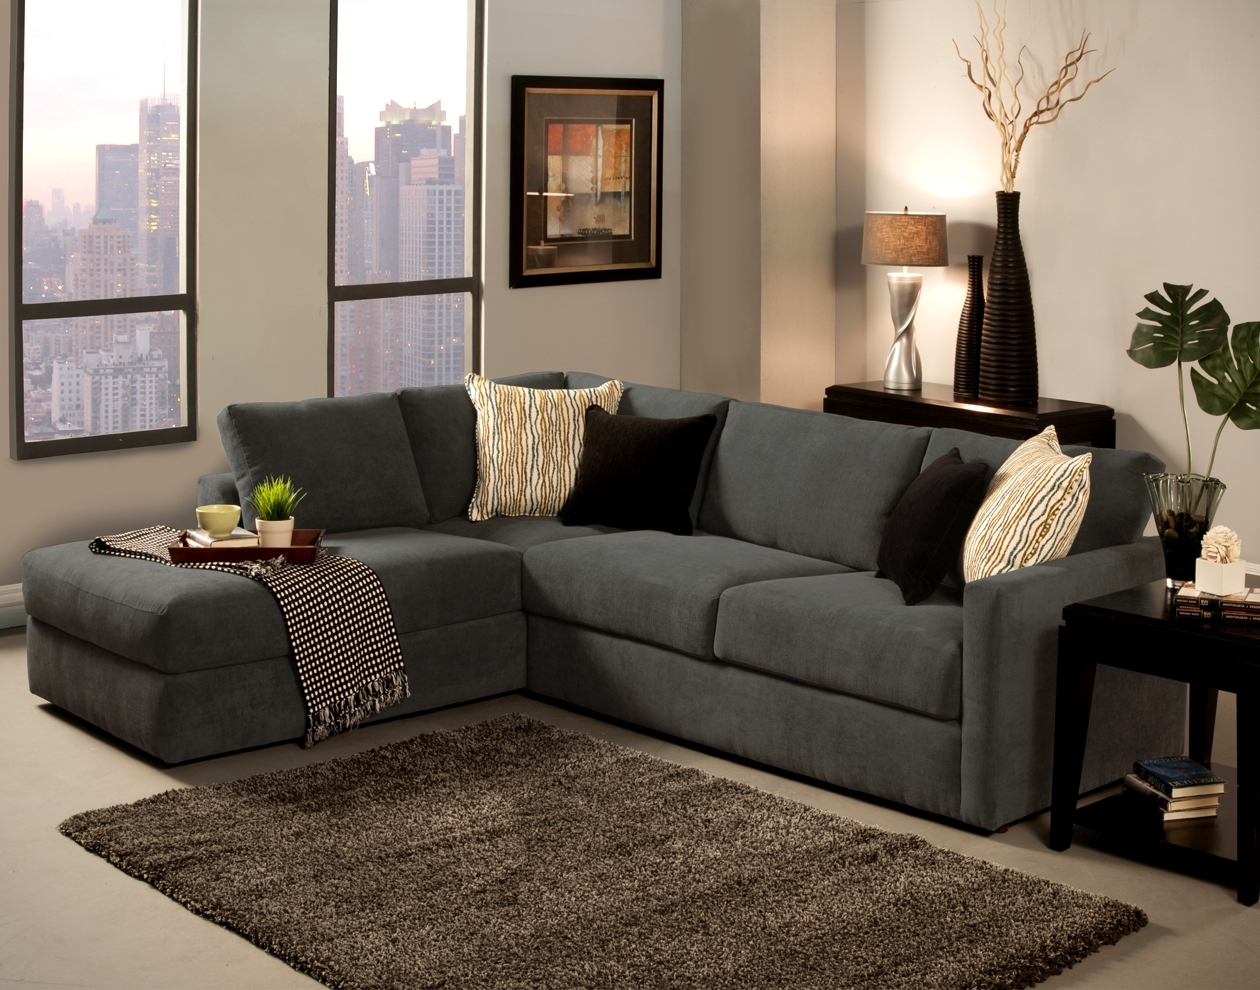 Current Sofa ~ Luxury Leather Sofa With Chaise Lounge Cute Small Sectional Intended For Sectionals With Chaise Lounge (View 9 of 15)